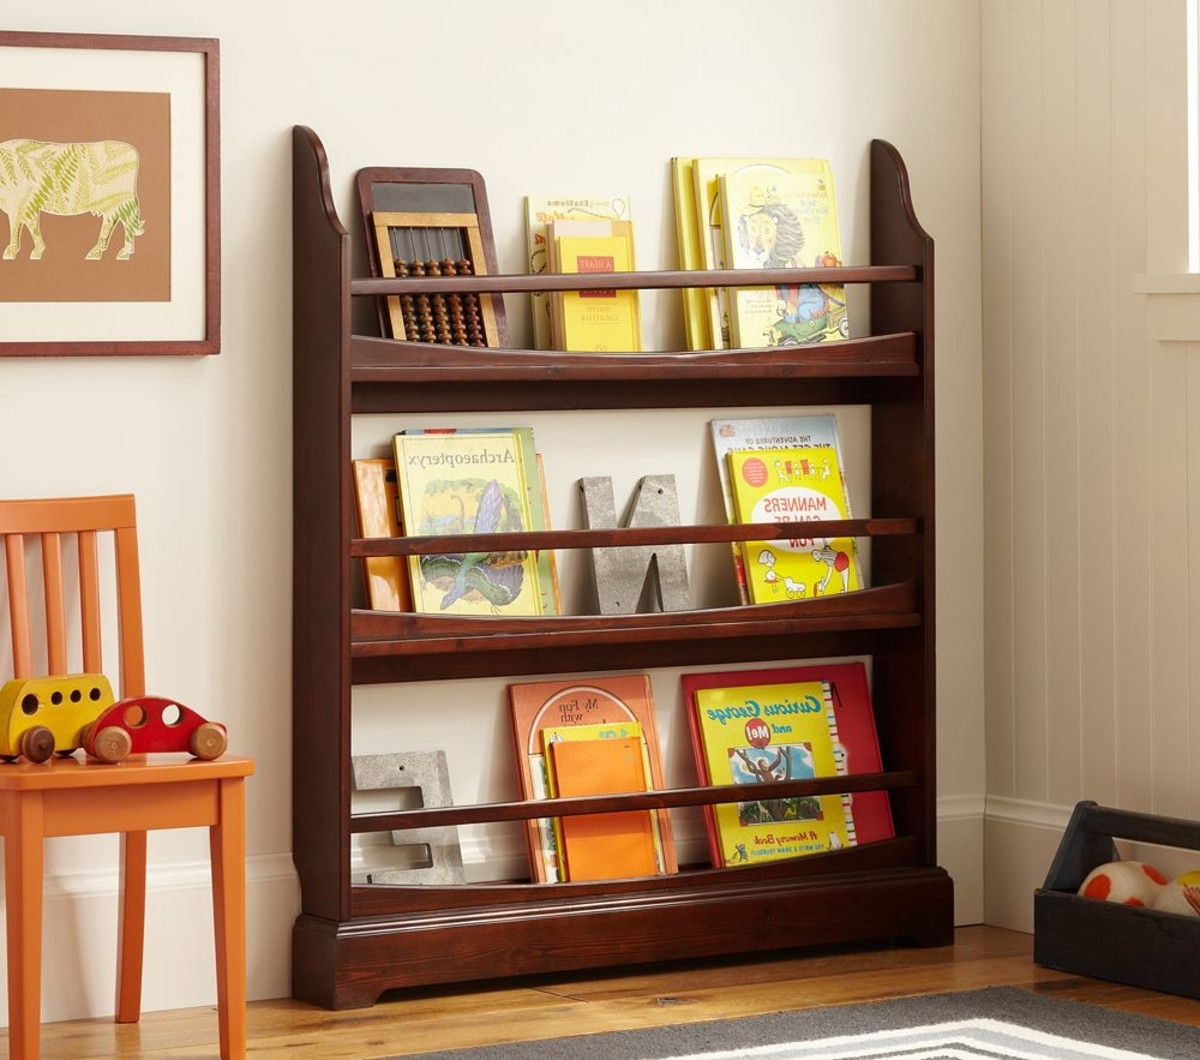 Pottery Barn Bookcases Intended For Current Madison 3 Shelf Bookrack (View 6 of 15)